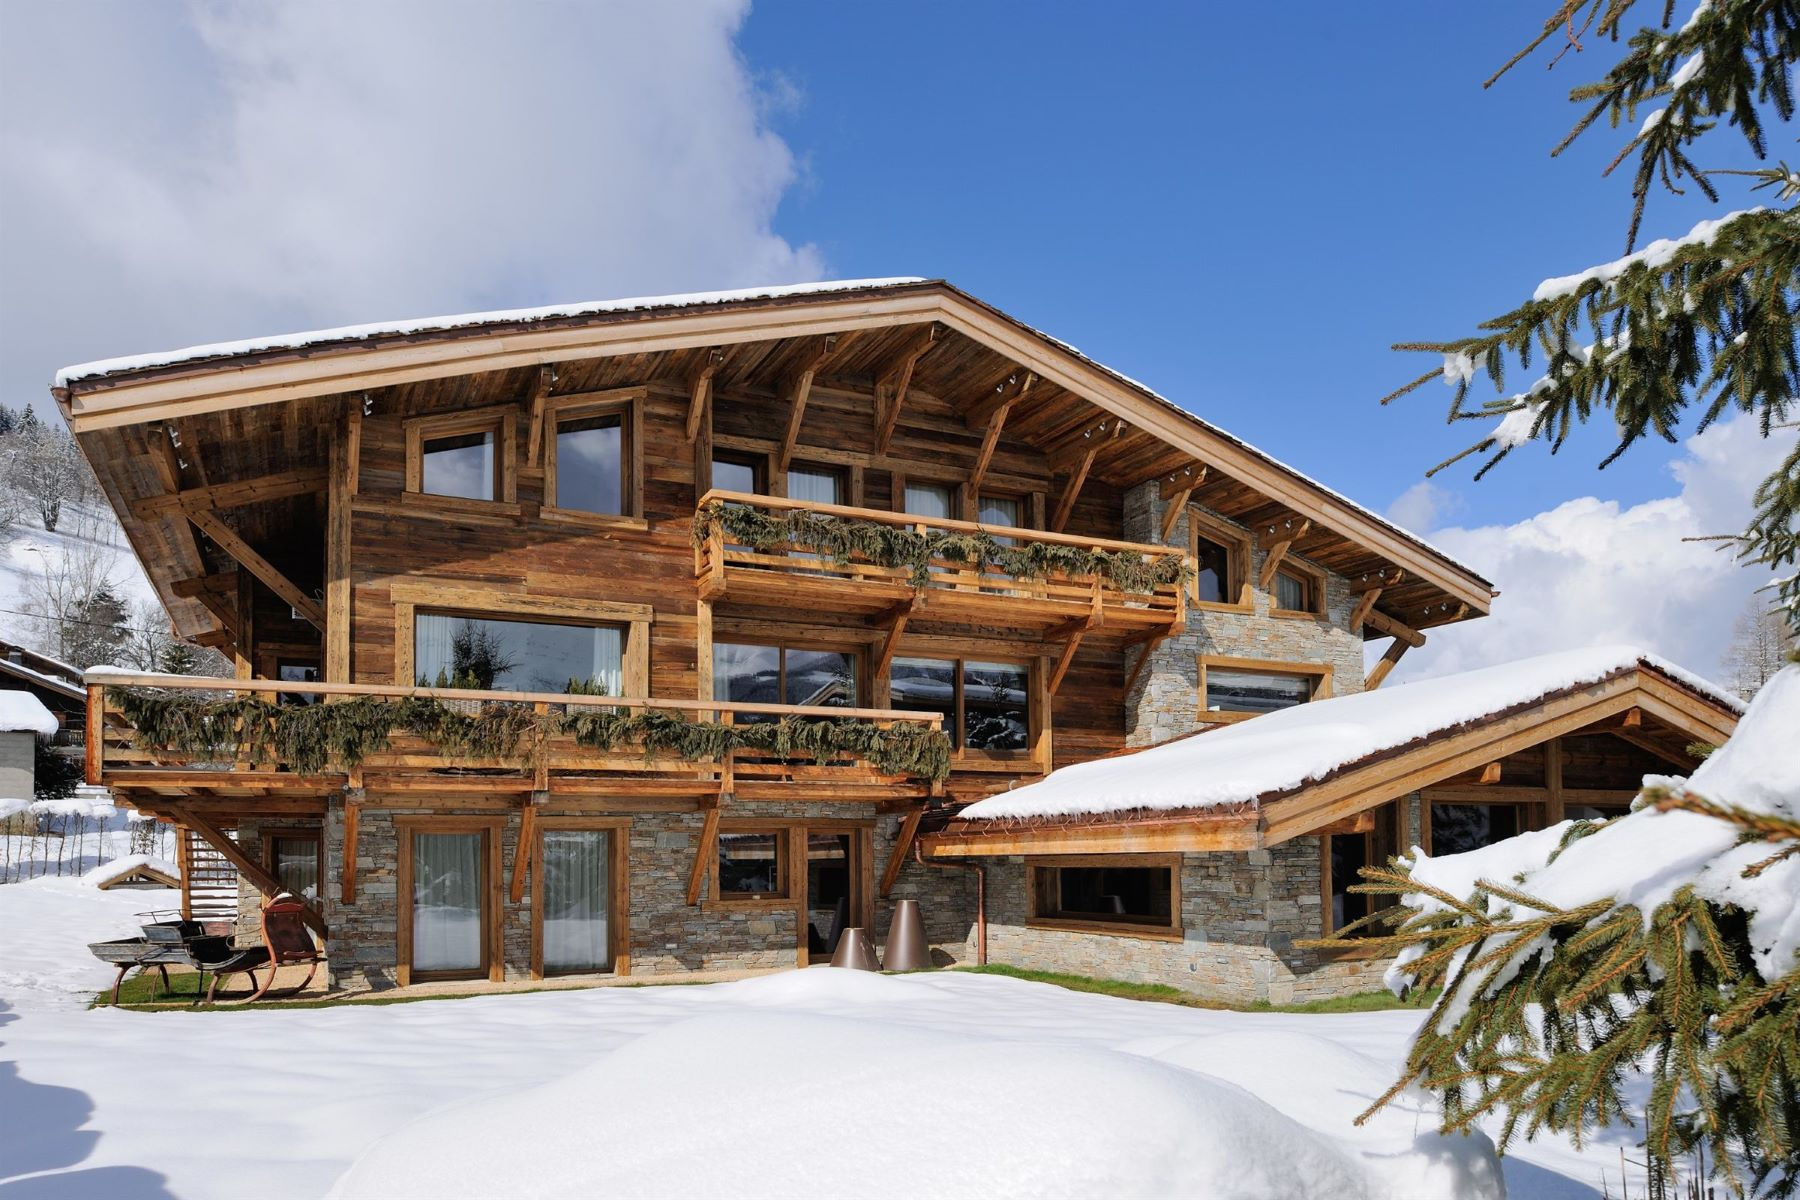 Single Family Homes for Sale at Luxury chalet with indoor pool - Megève French Alps Megeve, Rhone-Alpes 74120 France